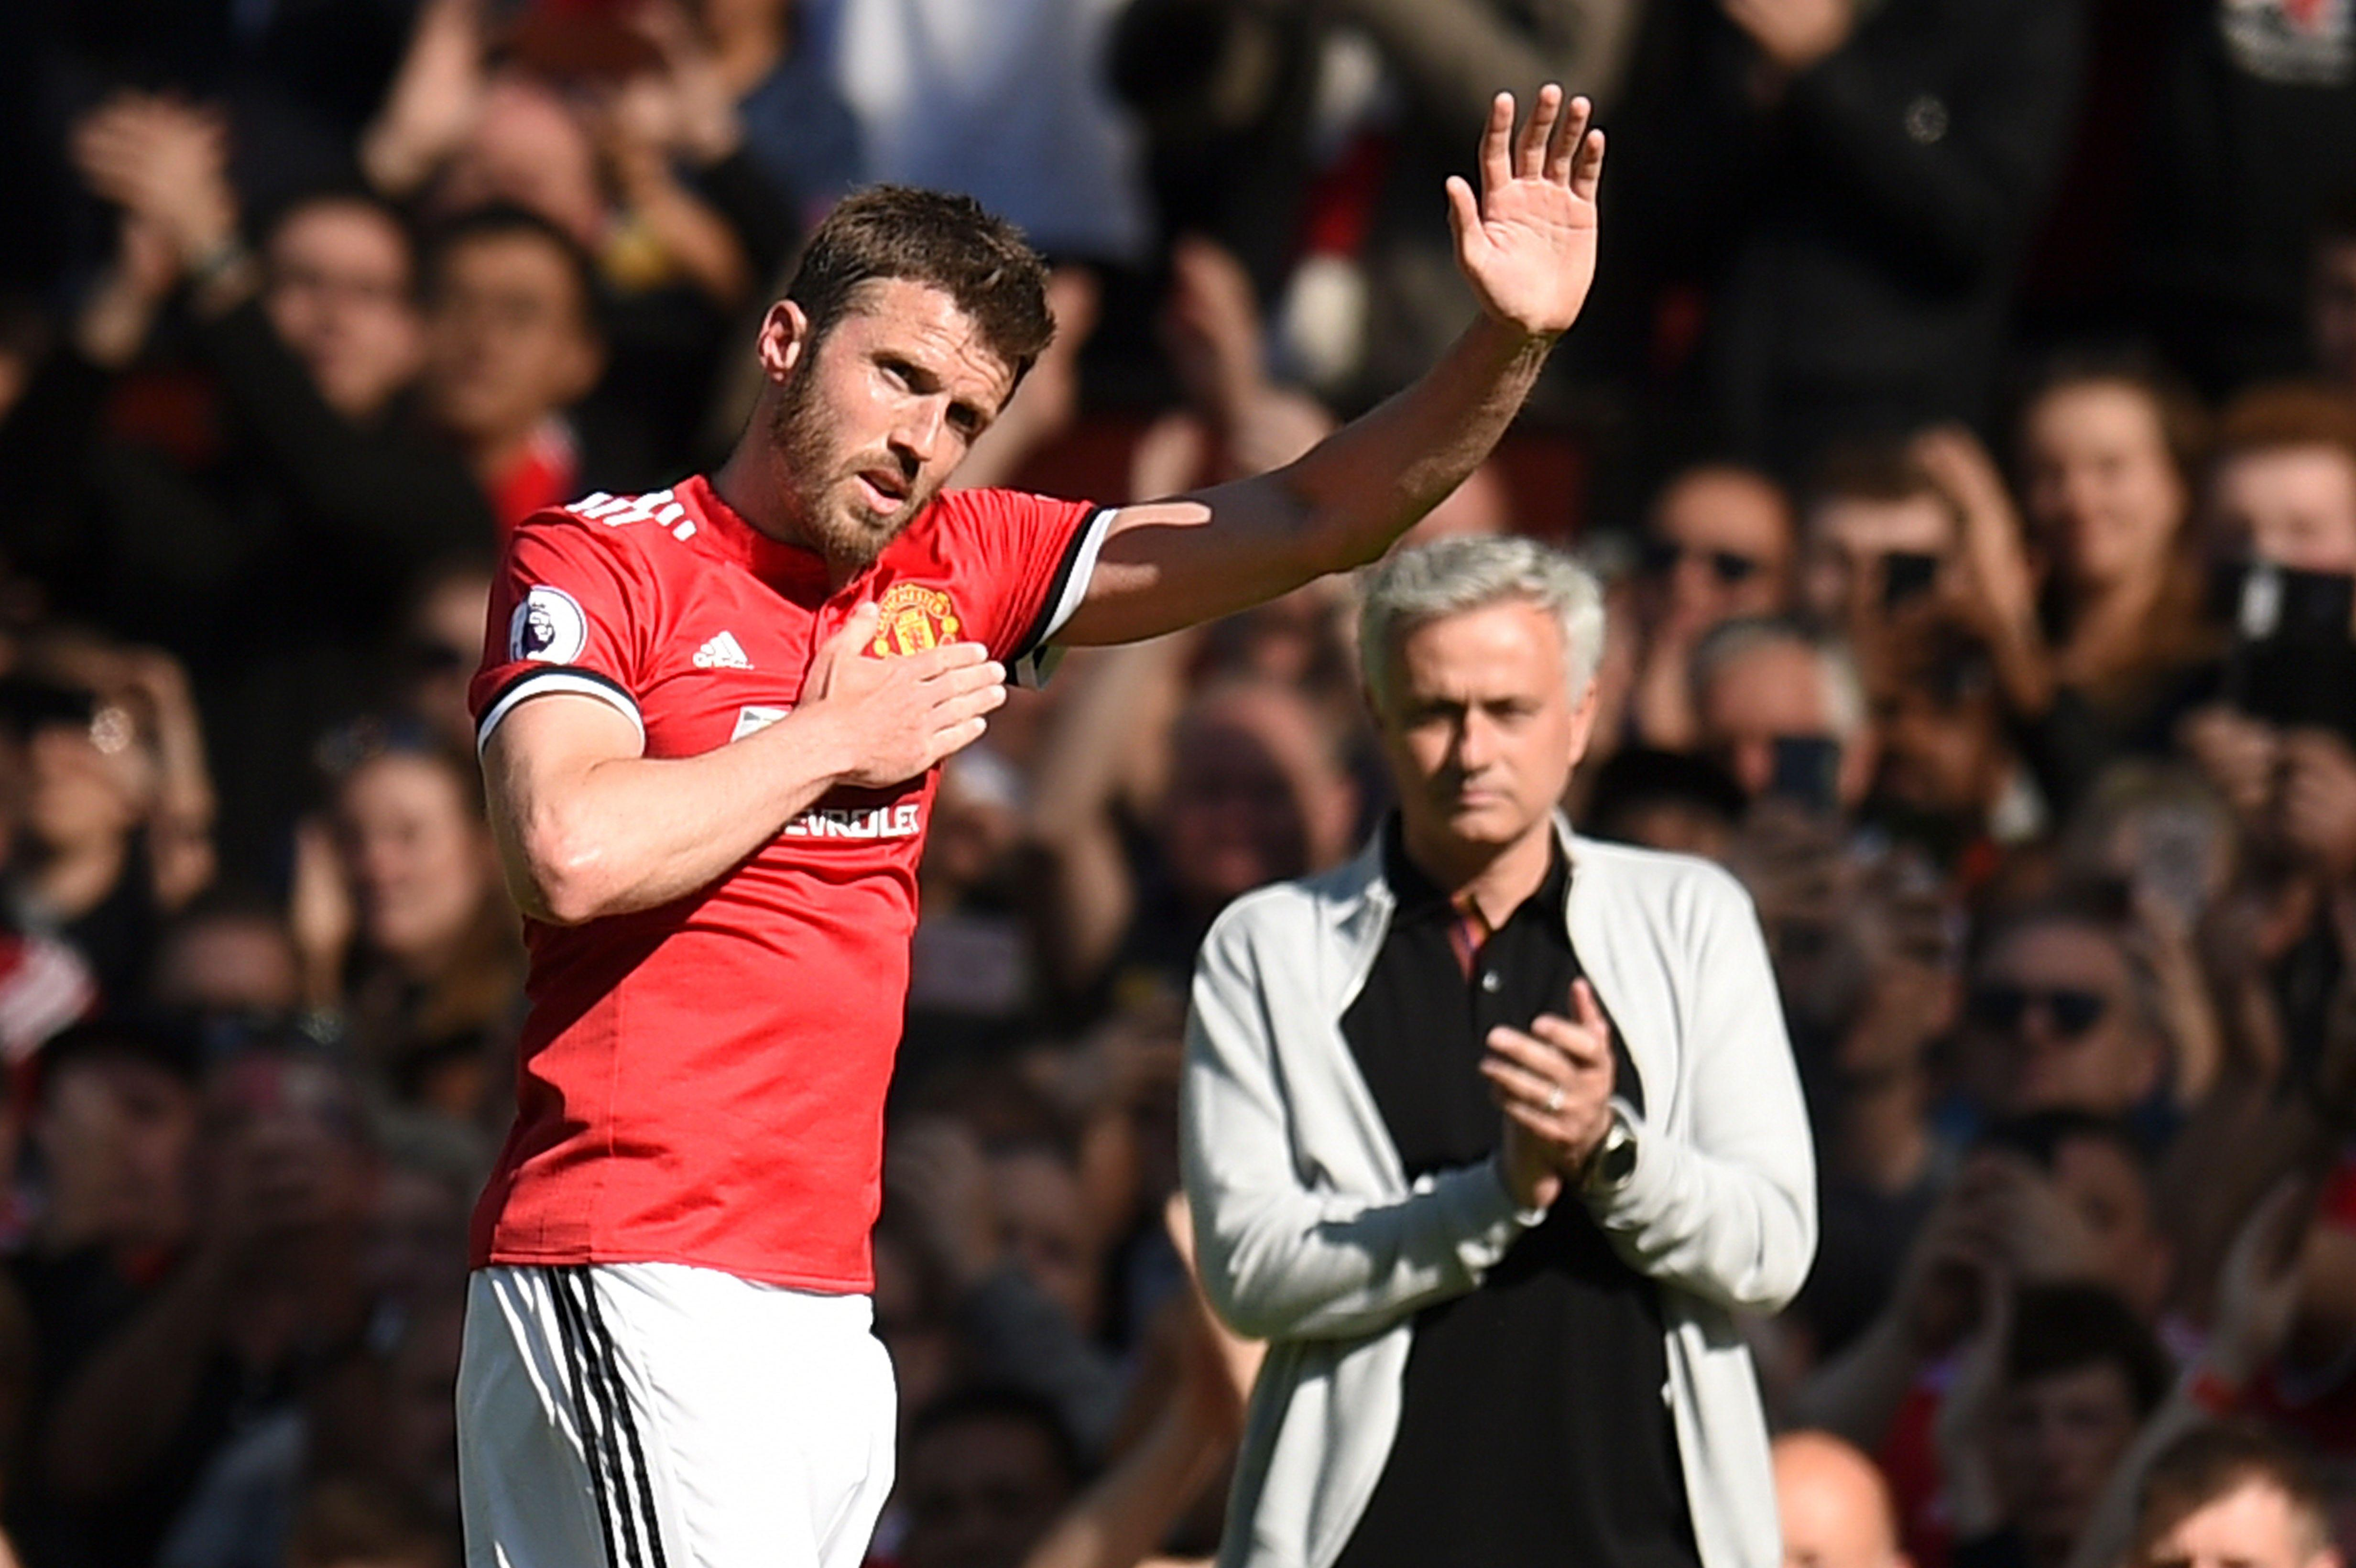 Carrick acknowledges the Old Trafford crowd one last time